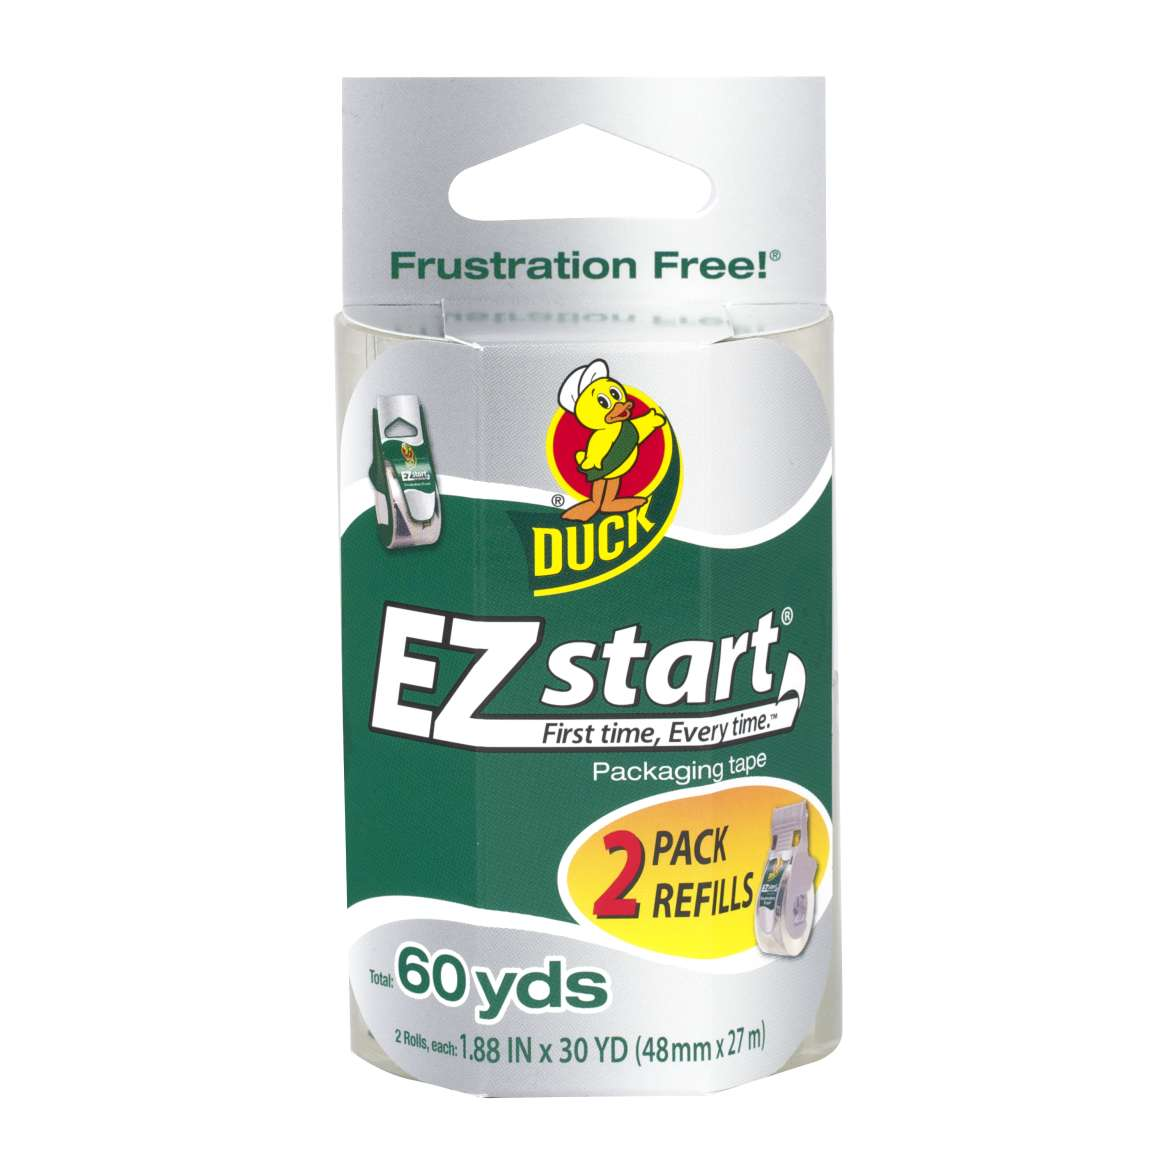 Duck EZ Start Packaging Tape Refill, 1.88 in. x 30 yd., Clear, 2-Count